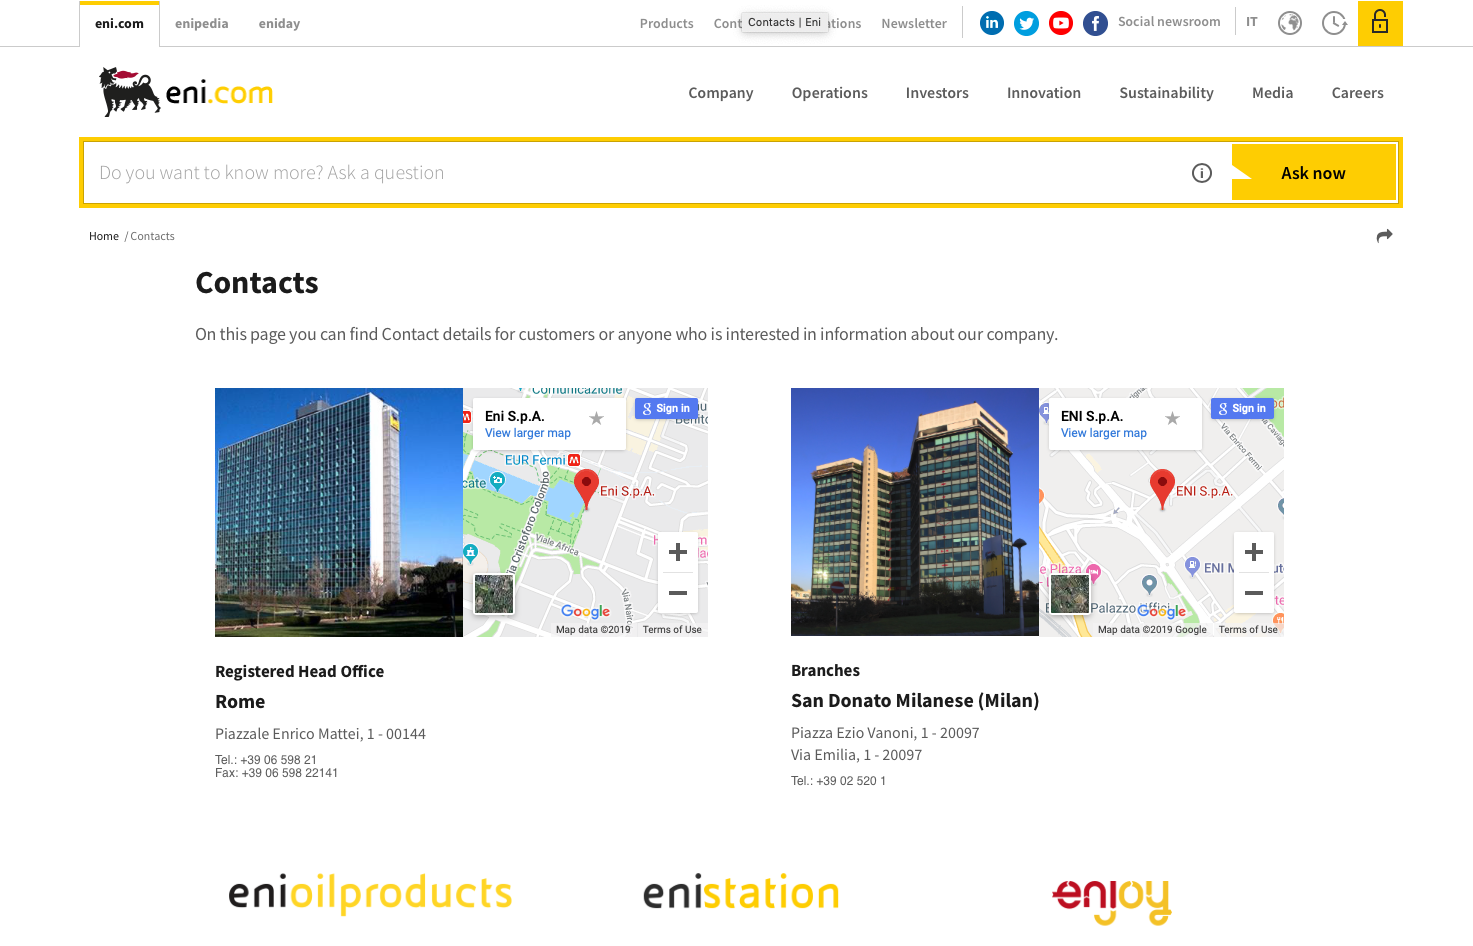 Eni's contact page is welcoming and transparent, with clearly signposted direct contact options for a variety of stakeholders.